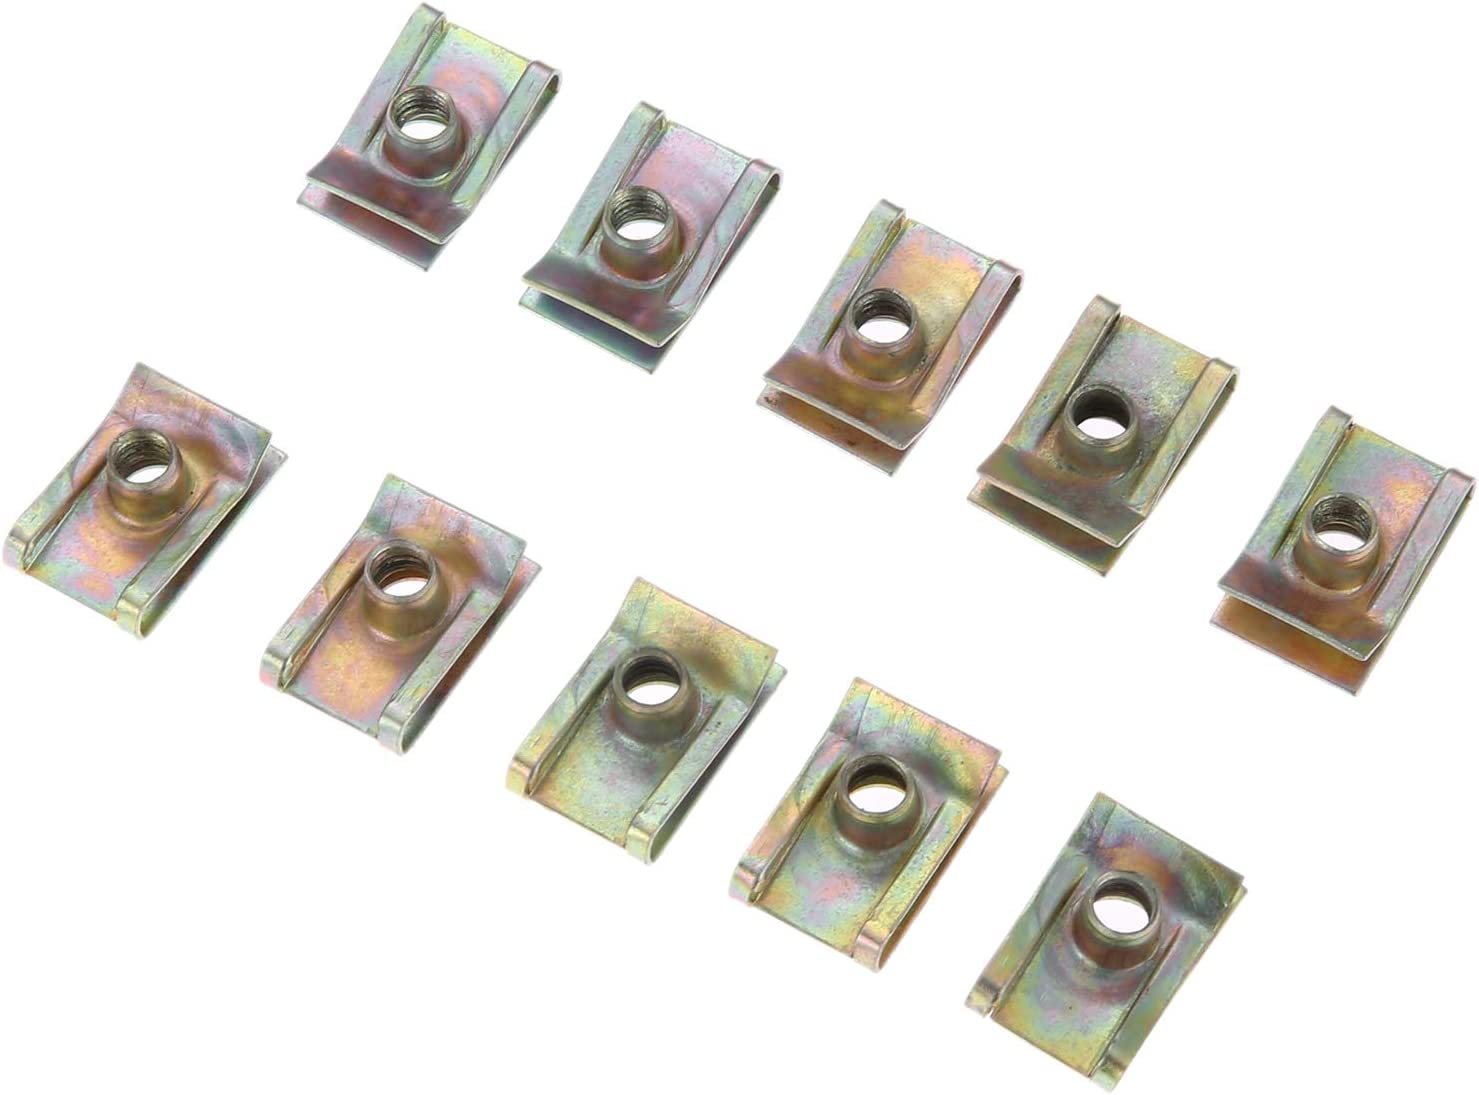 Mtsooning 20Pcs Auto Clips M5 Universal Clips for Car Motor Tread Panel Spire Nut Fairing Clip Fastener Speed Zinc Mounting Clamp